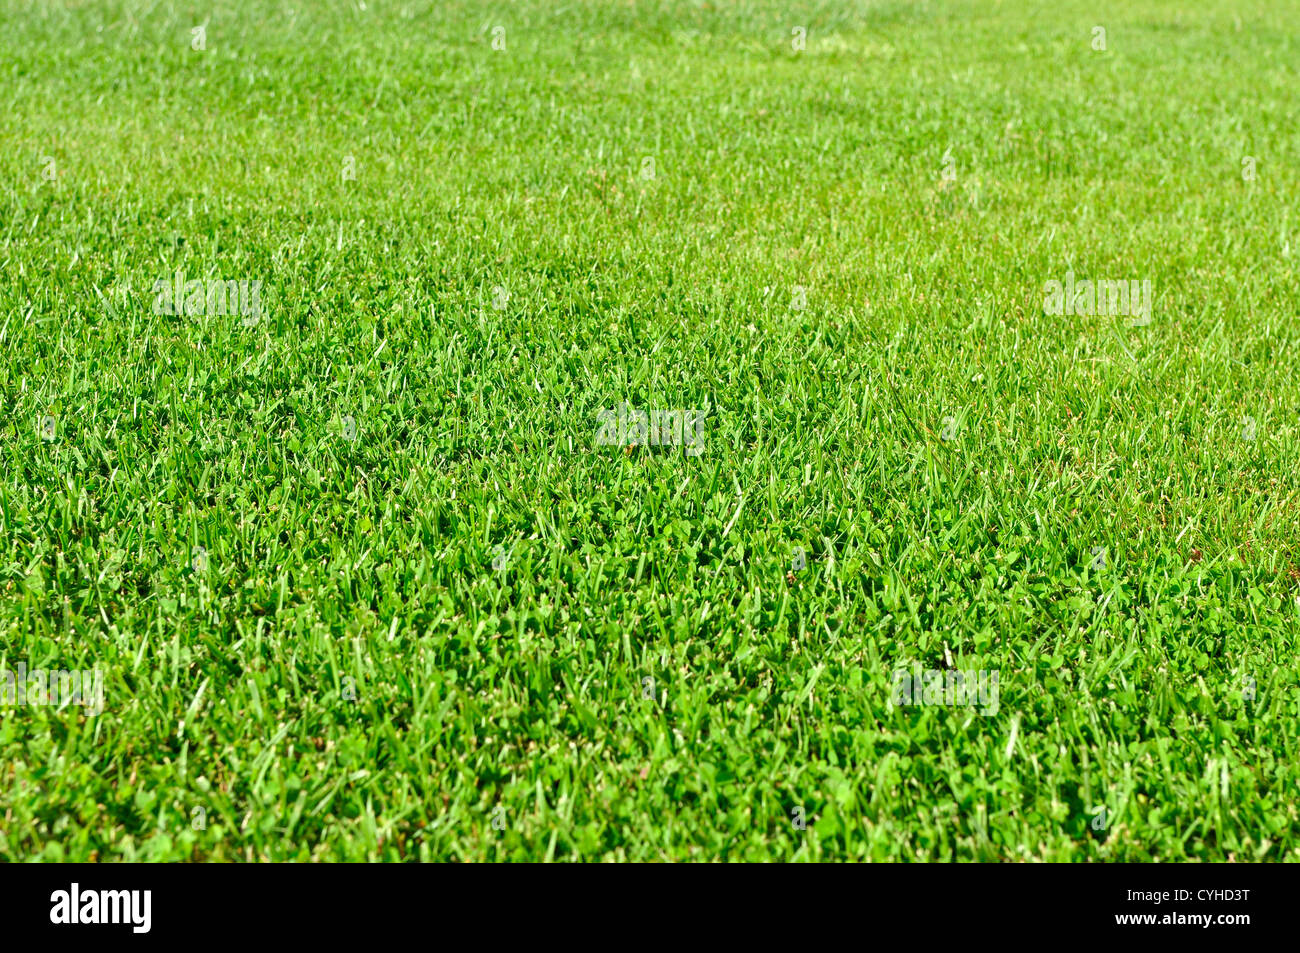 A fresh natural grass field, low depth of field, focus on the middle of the frame - Stock Image